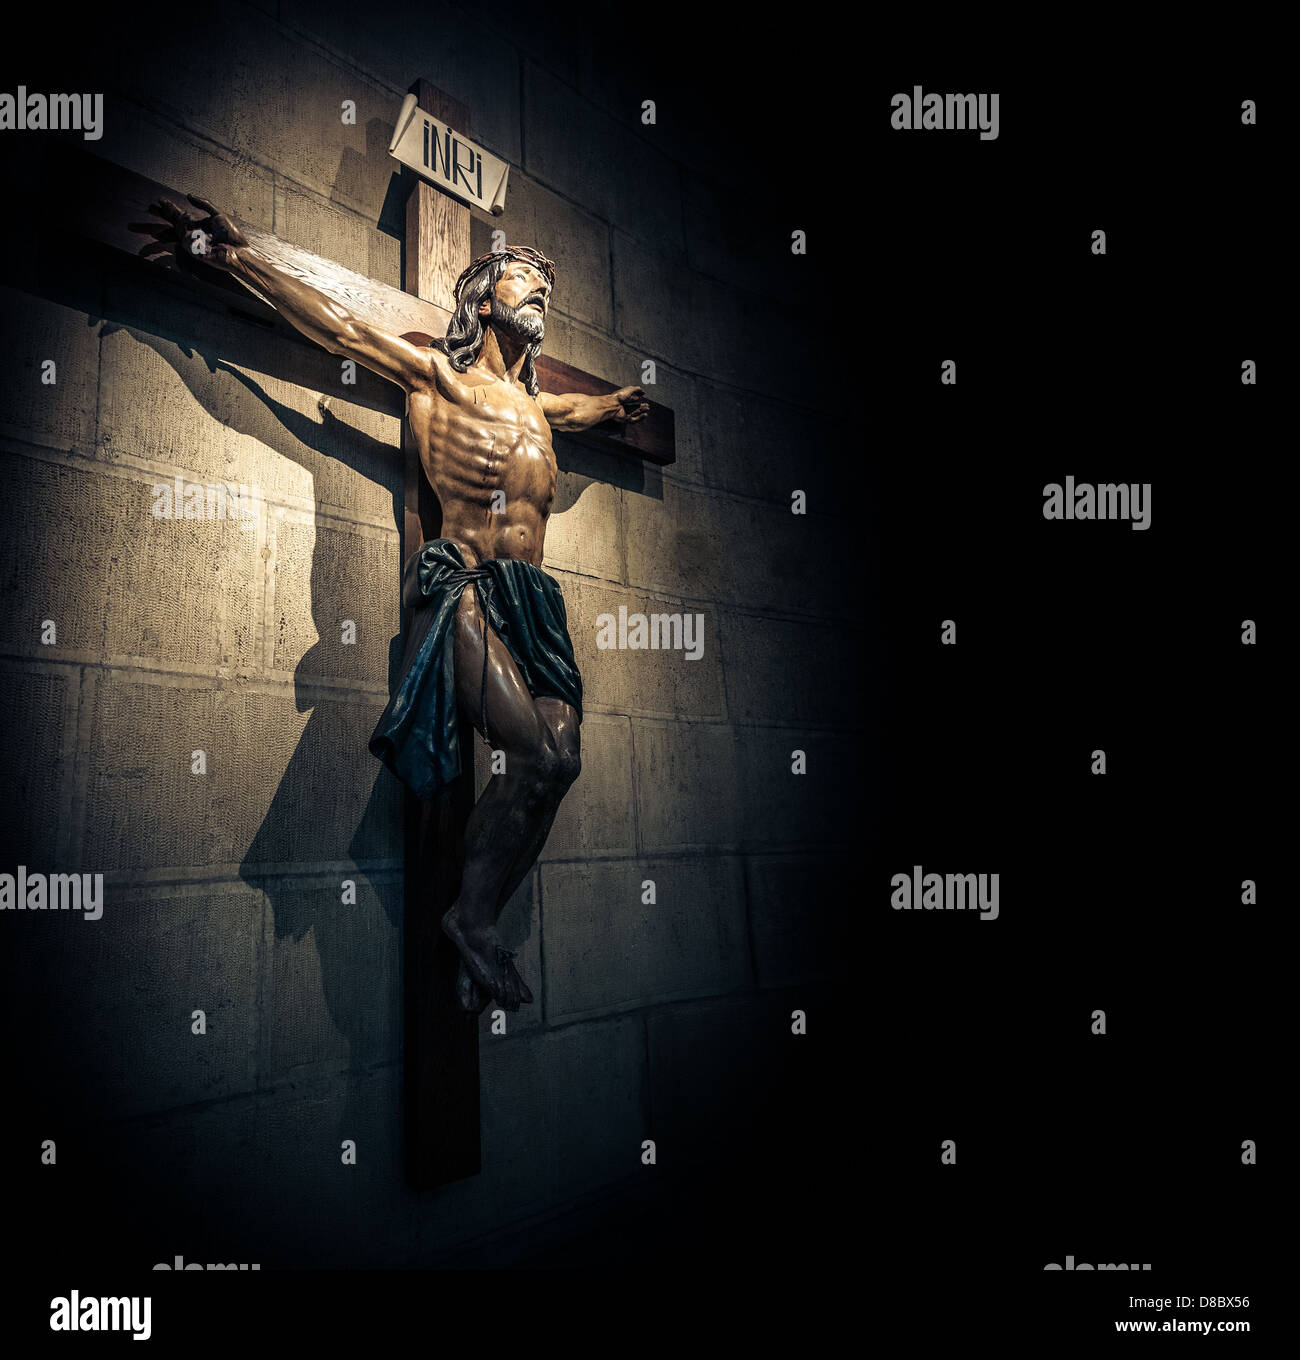 Crucifix on wall in spotlight inside old dark church or cathedral. Jesus Christ on cross. Religion, belief and hope. - Stock Image